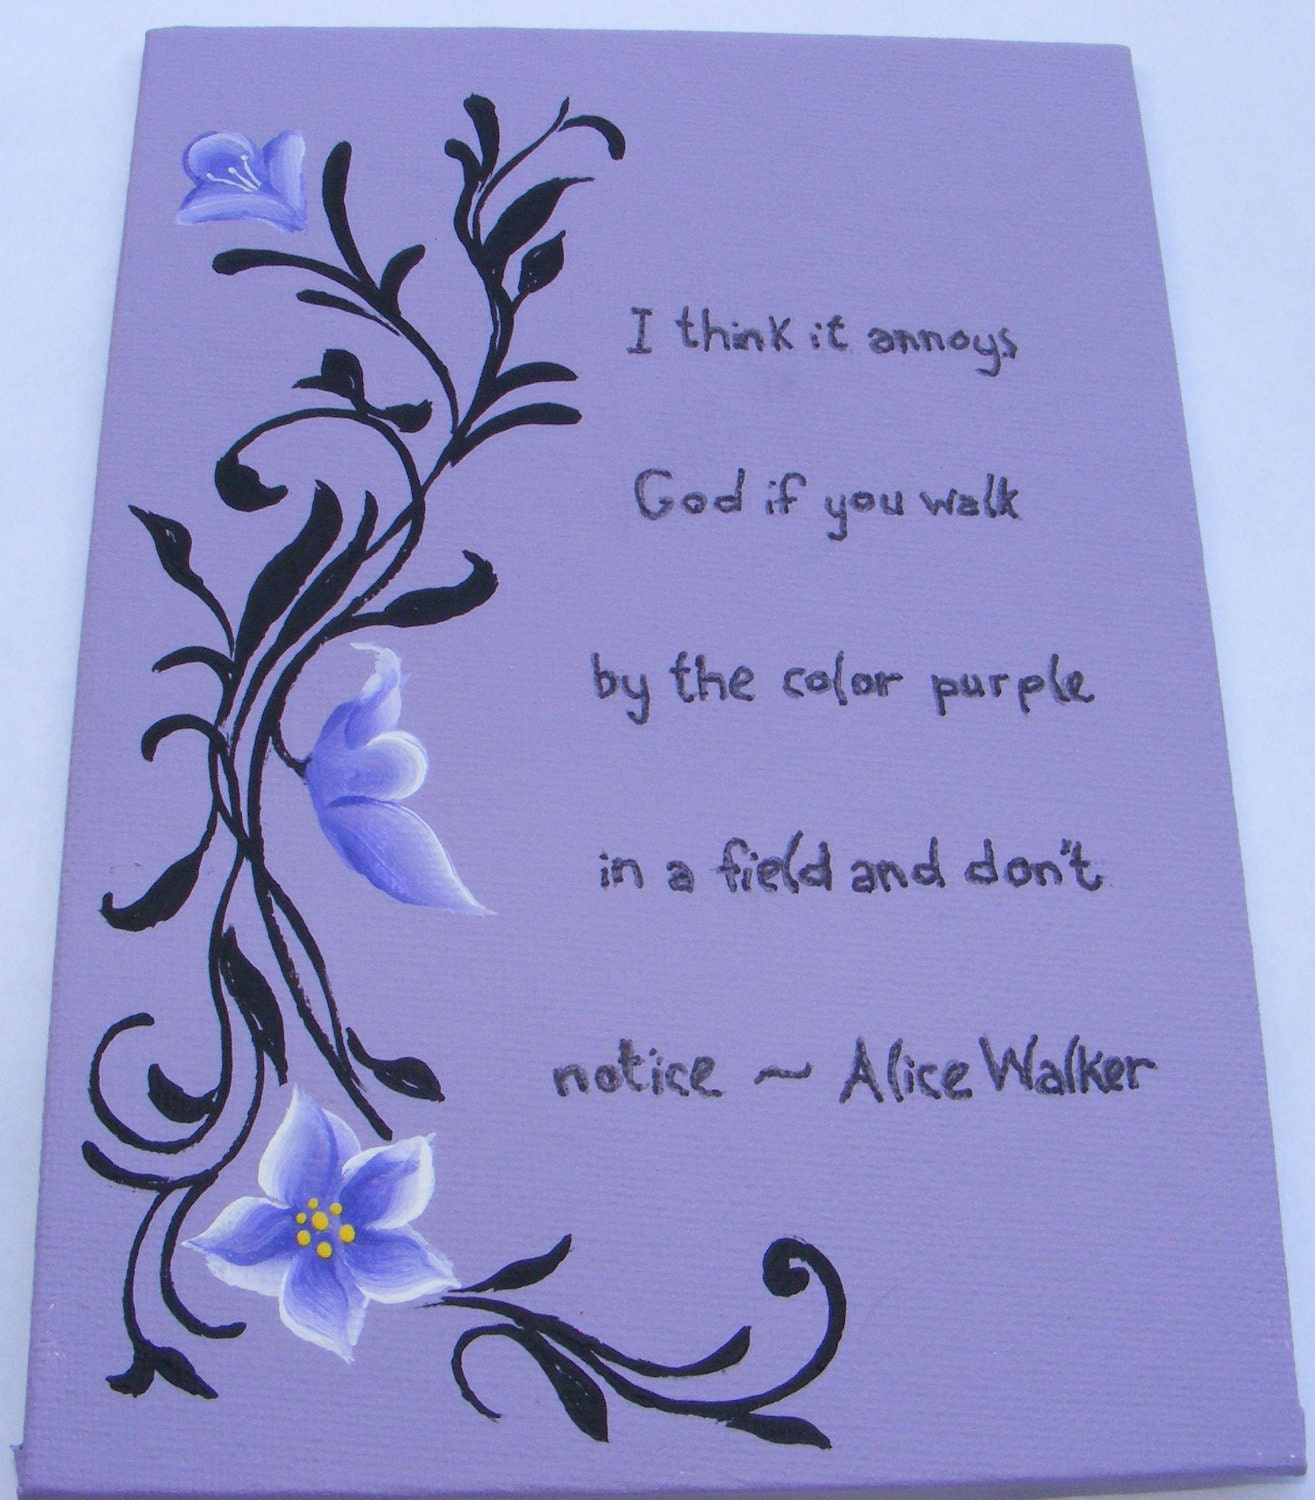 Quotes From The Color Purple Quotesgram Quotes About The Color Purple